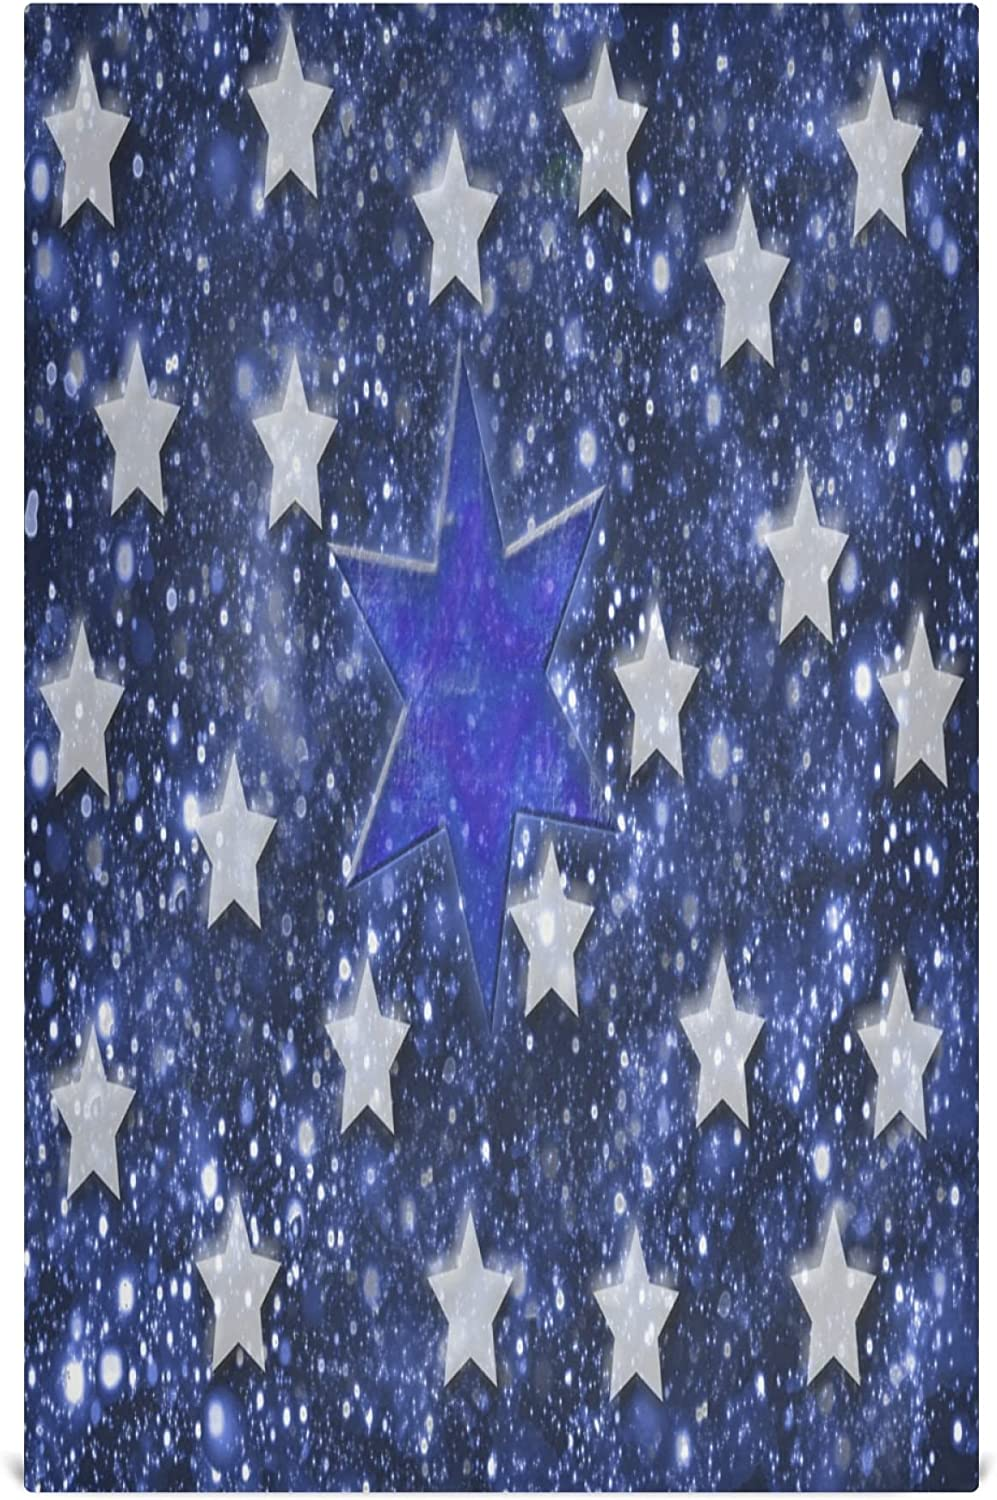 KLL Star Navy Blue Background Dish Cloth Set of 4 Kitchen Cleaning Hand Towels for Drying Dishes Wash Clothes for Sink Cooking Baking Table Decor 28 x 18 in